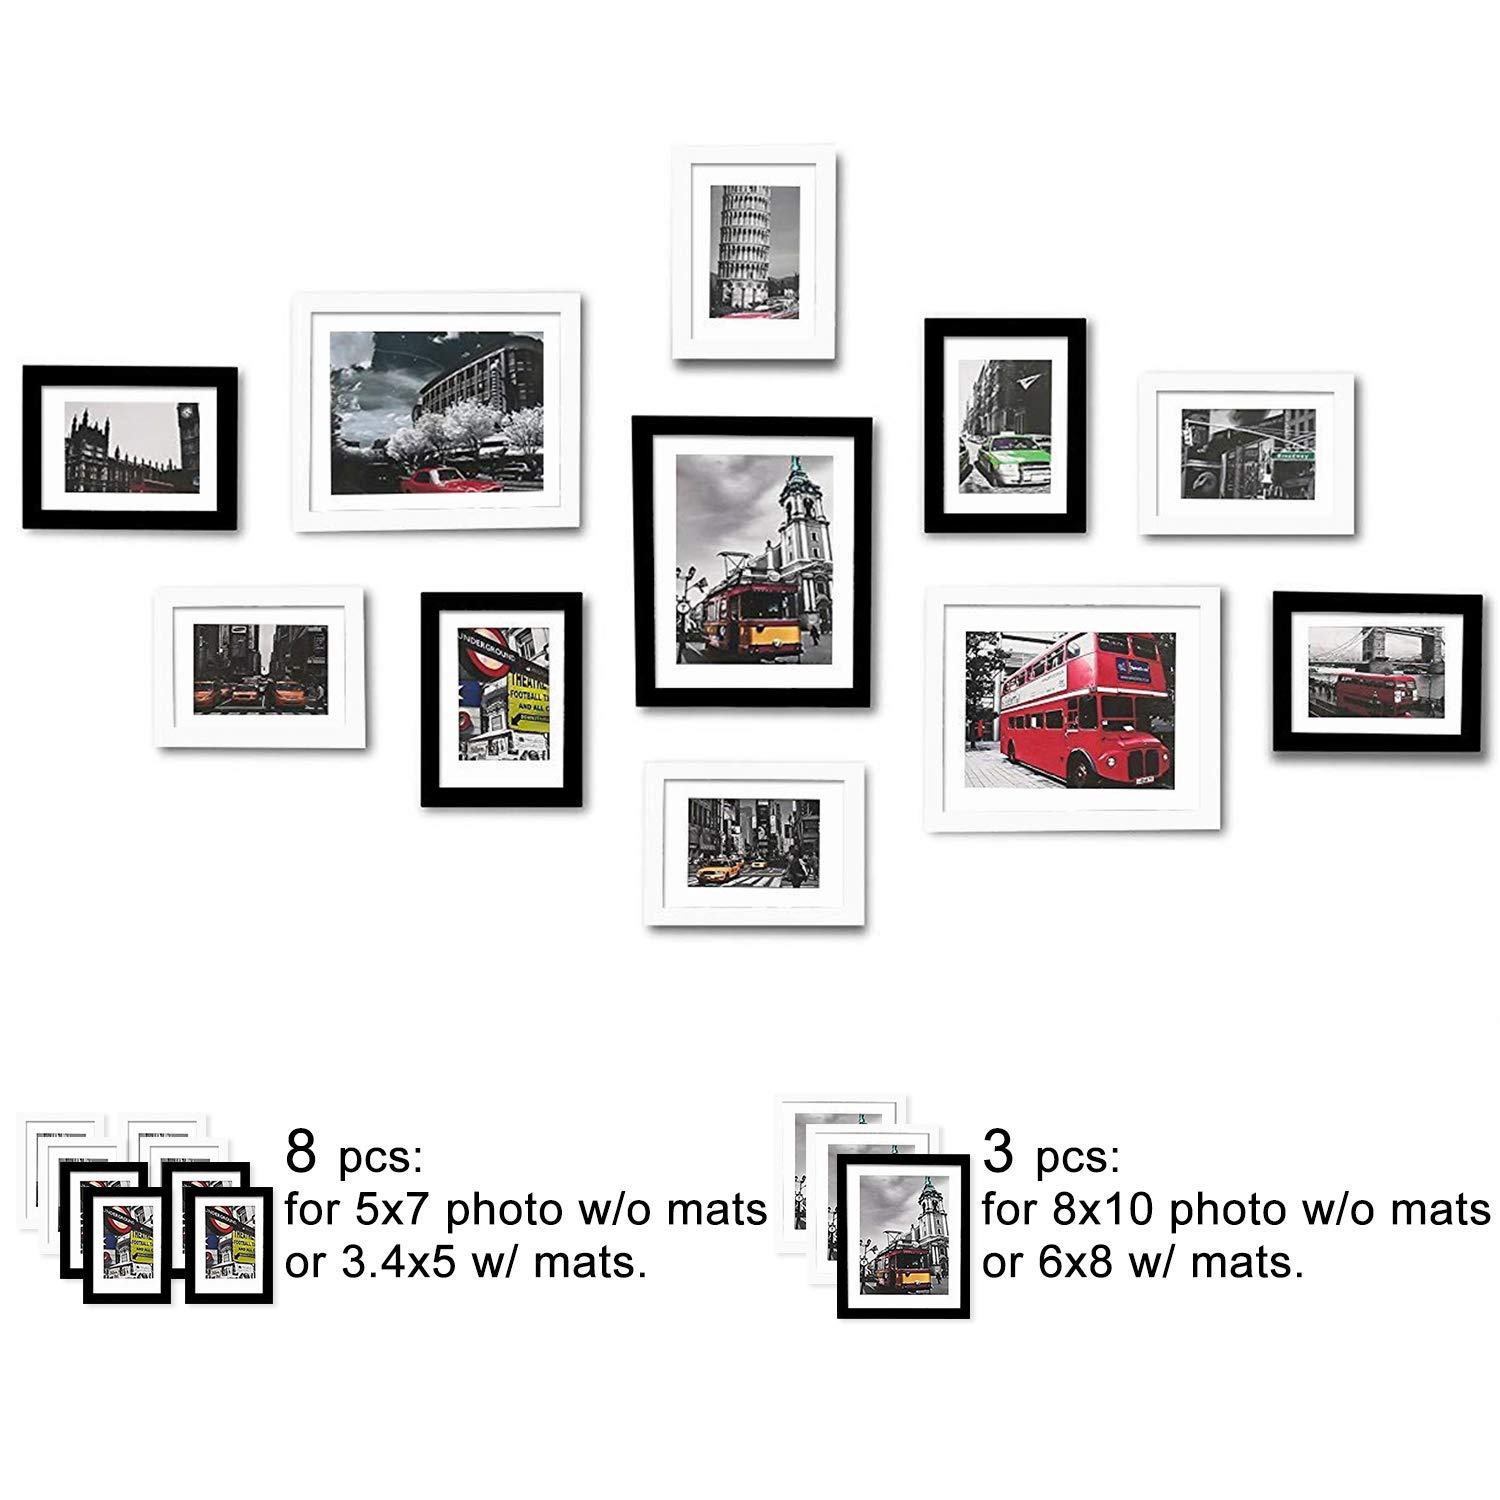 WOOD MEETS COLOR Picture Frames Set, Wall Gallery Collage Frames with Hanging Template, Photo Mats (Black and White) by WOOD MEETS COLOR